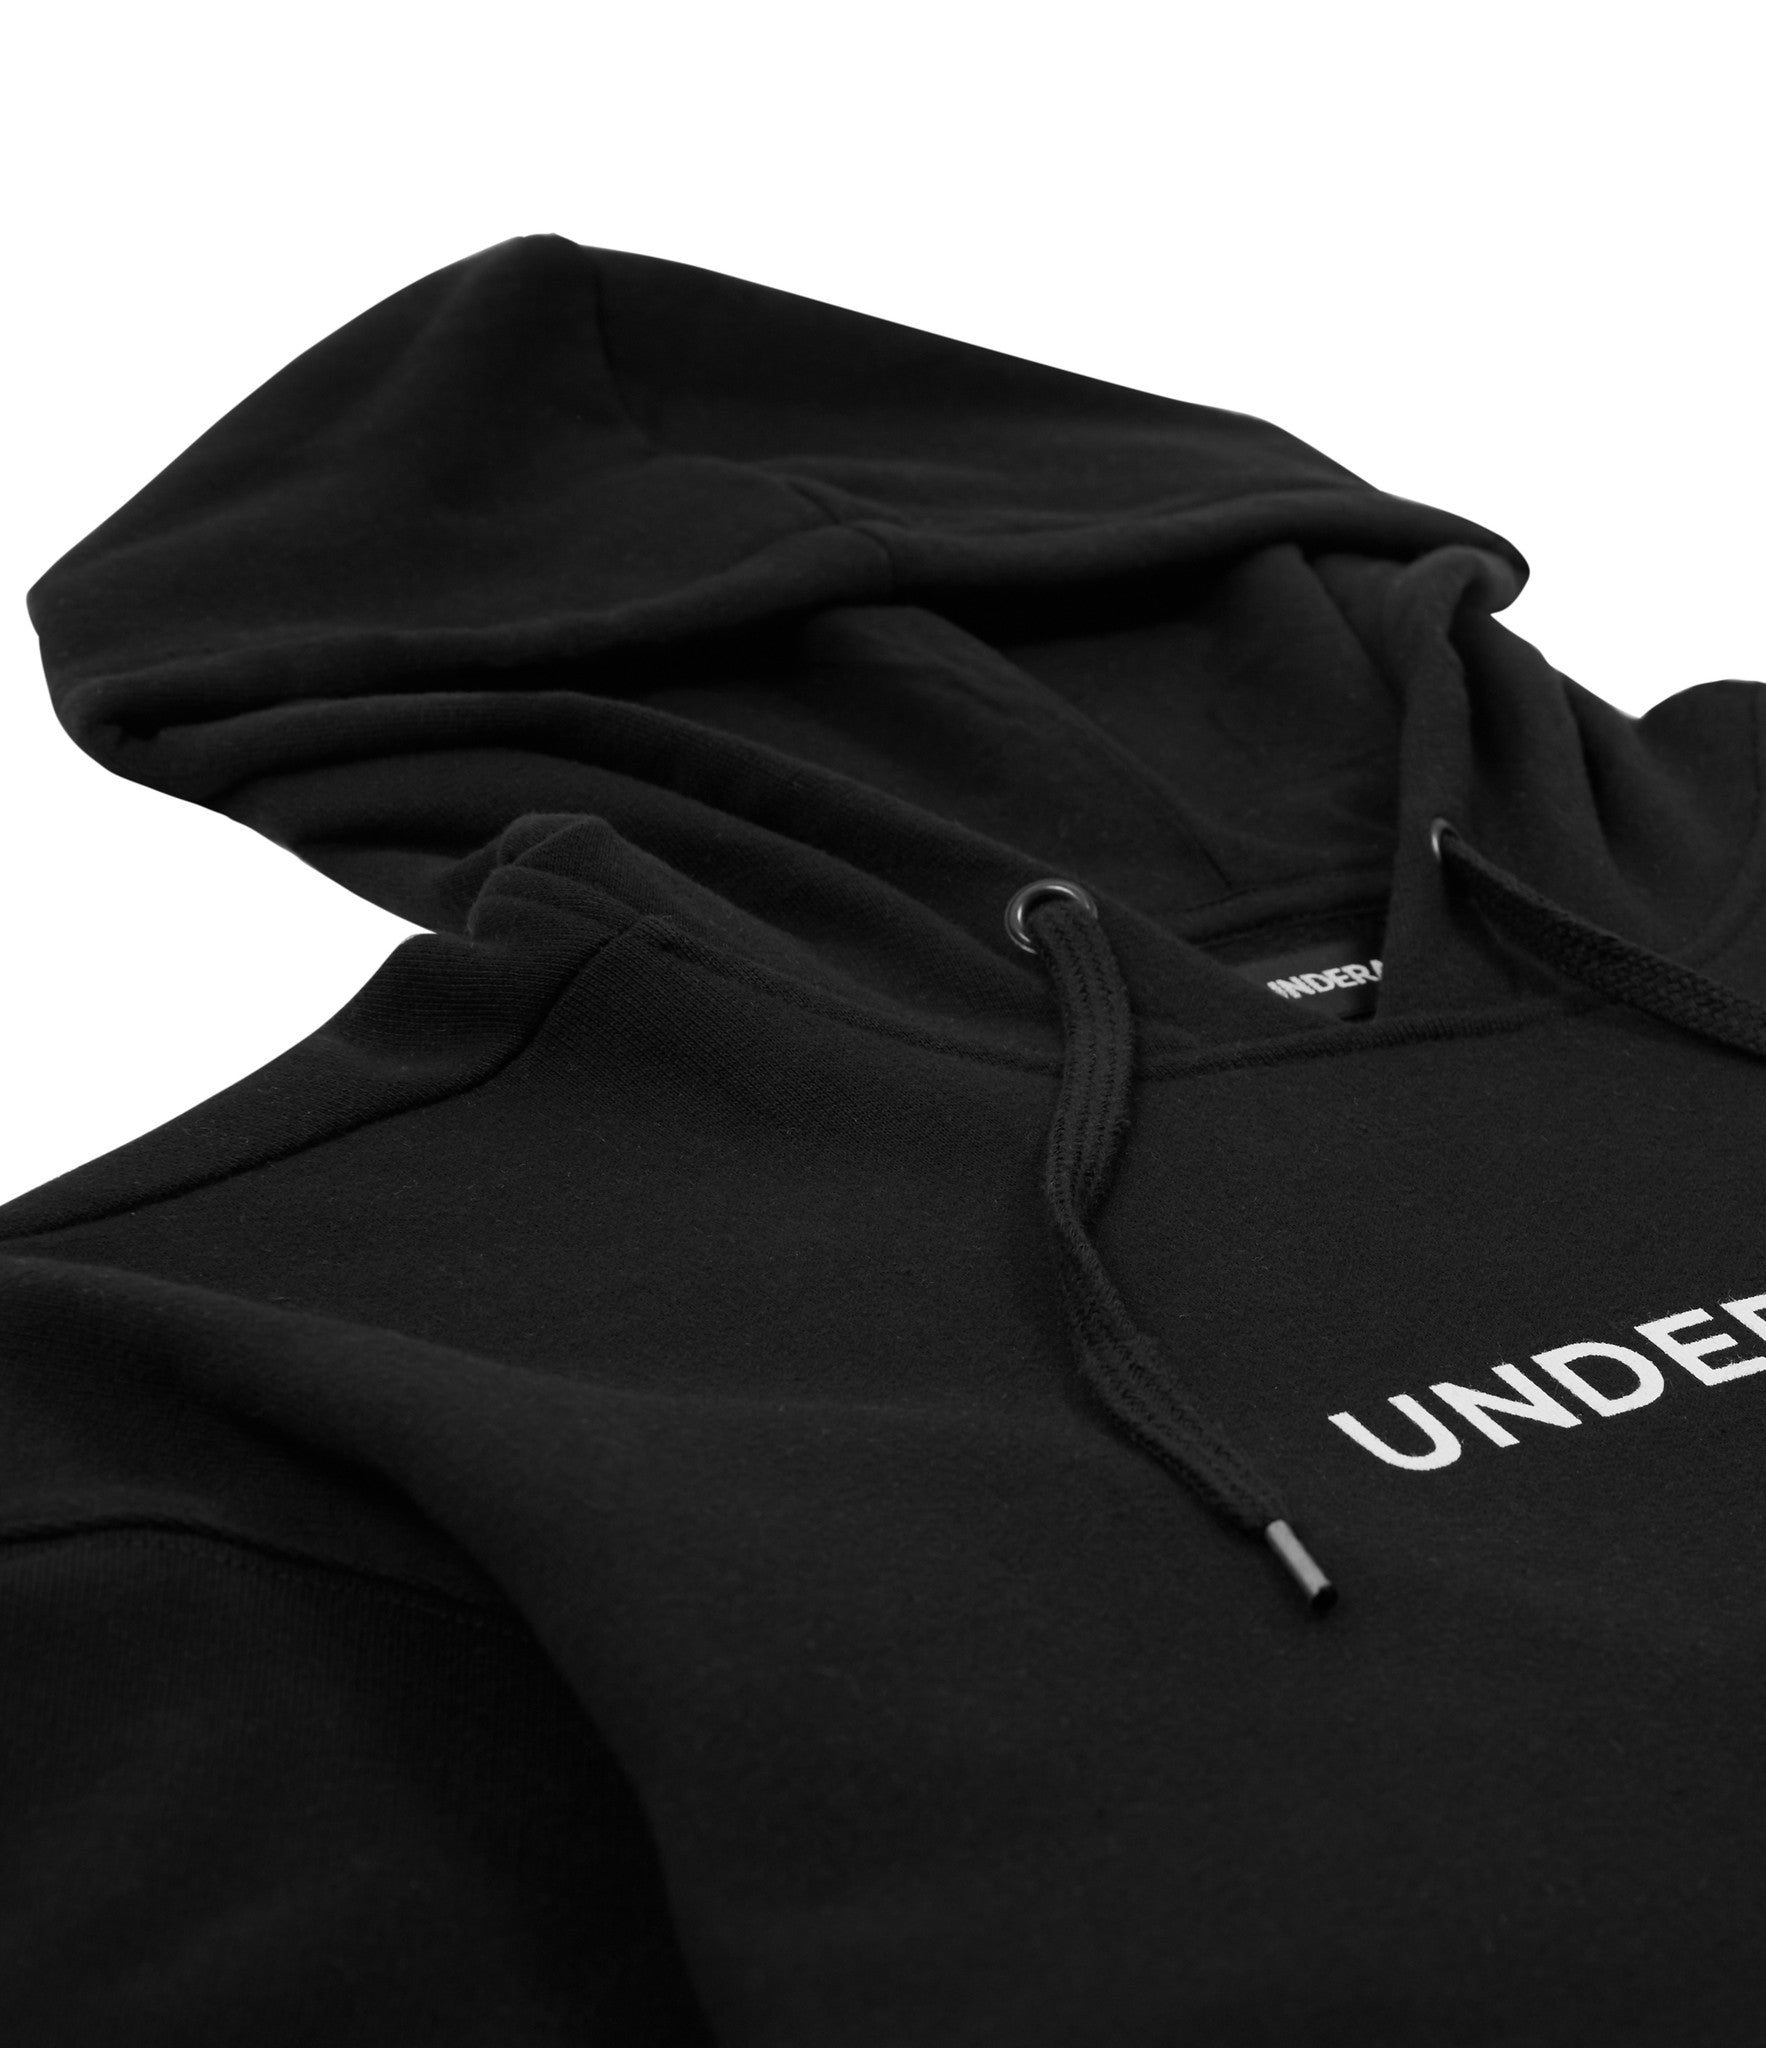 HD334 Printed Hoody - Black - underated london - underatedco - 2